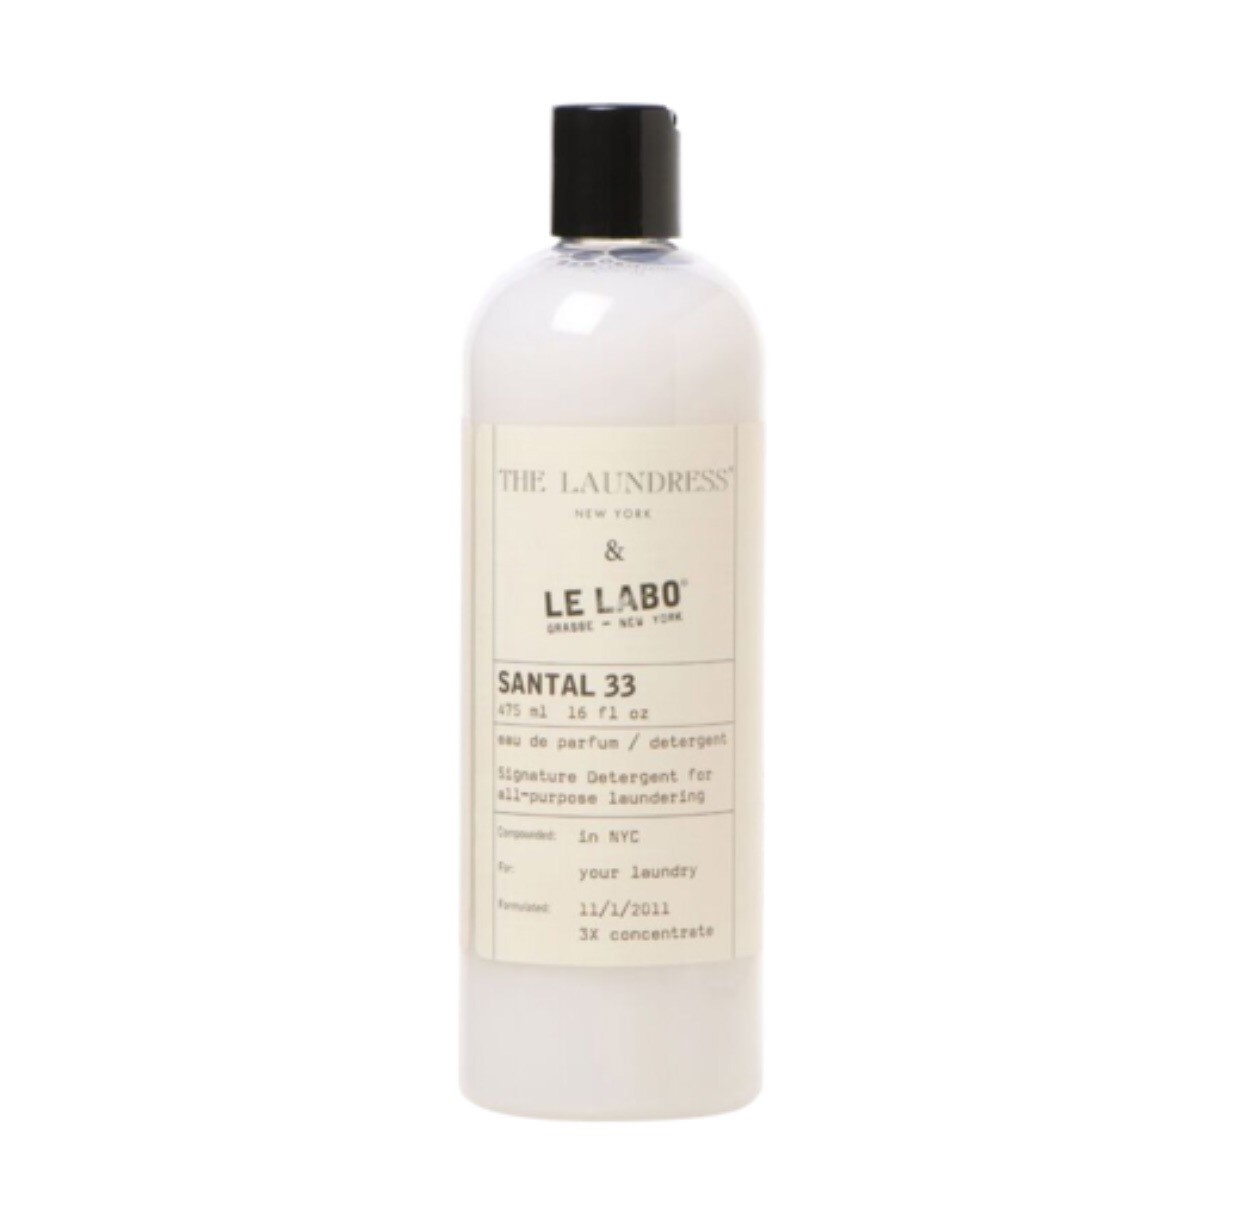 The Laundress  Le Labo Rose Signature Detergent